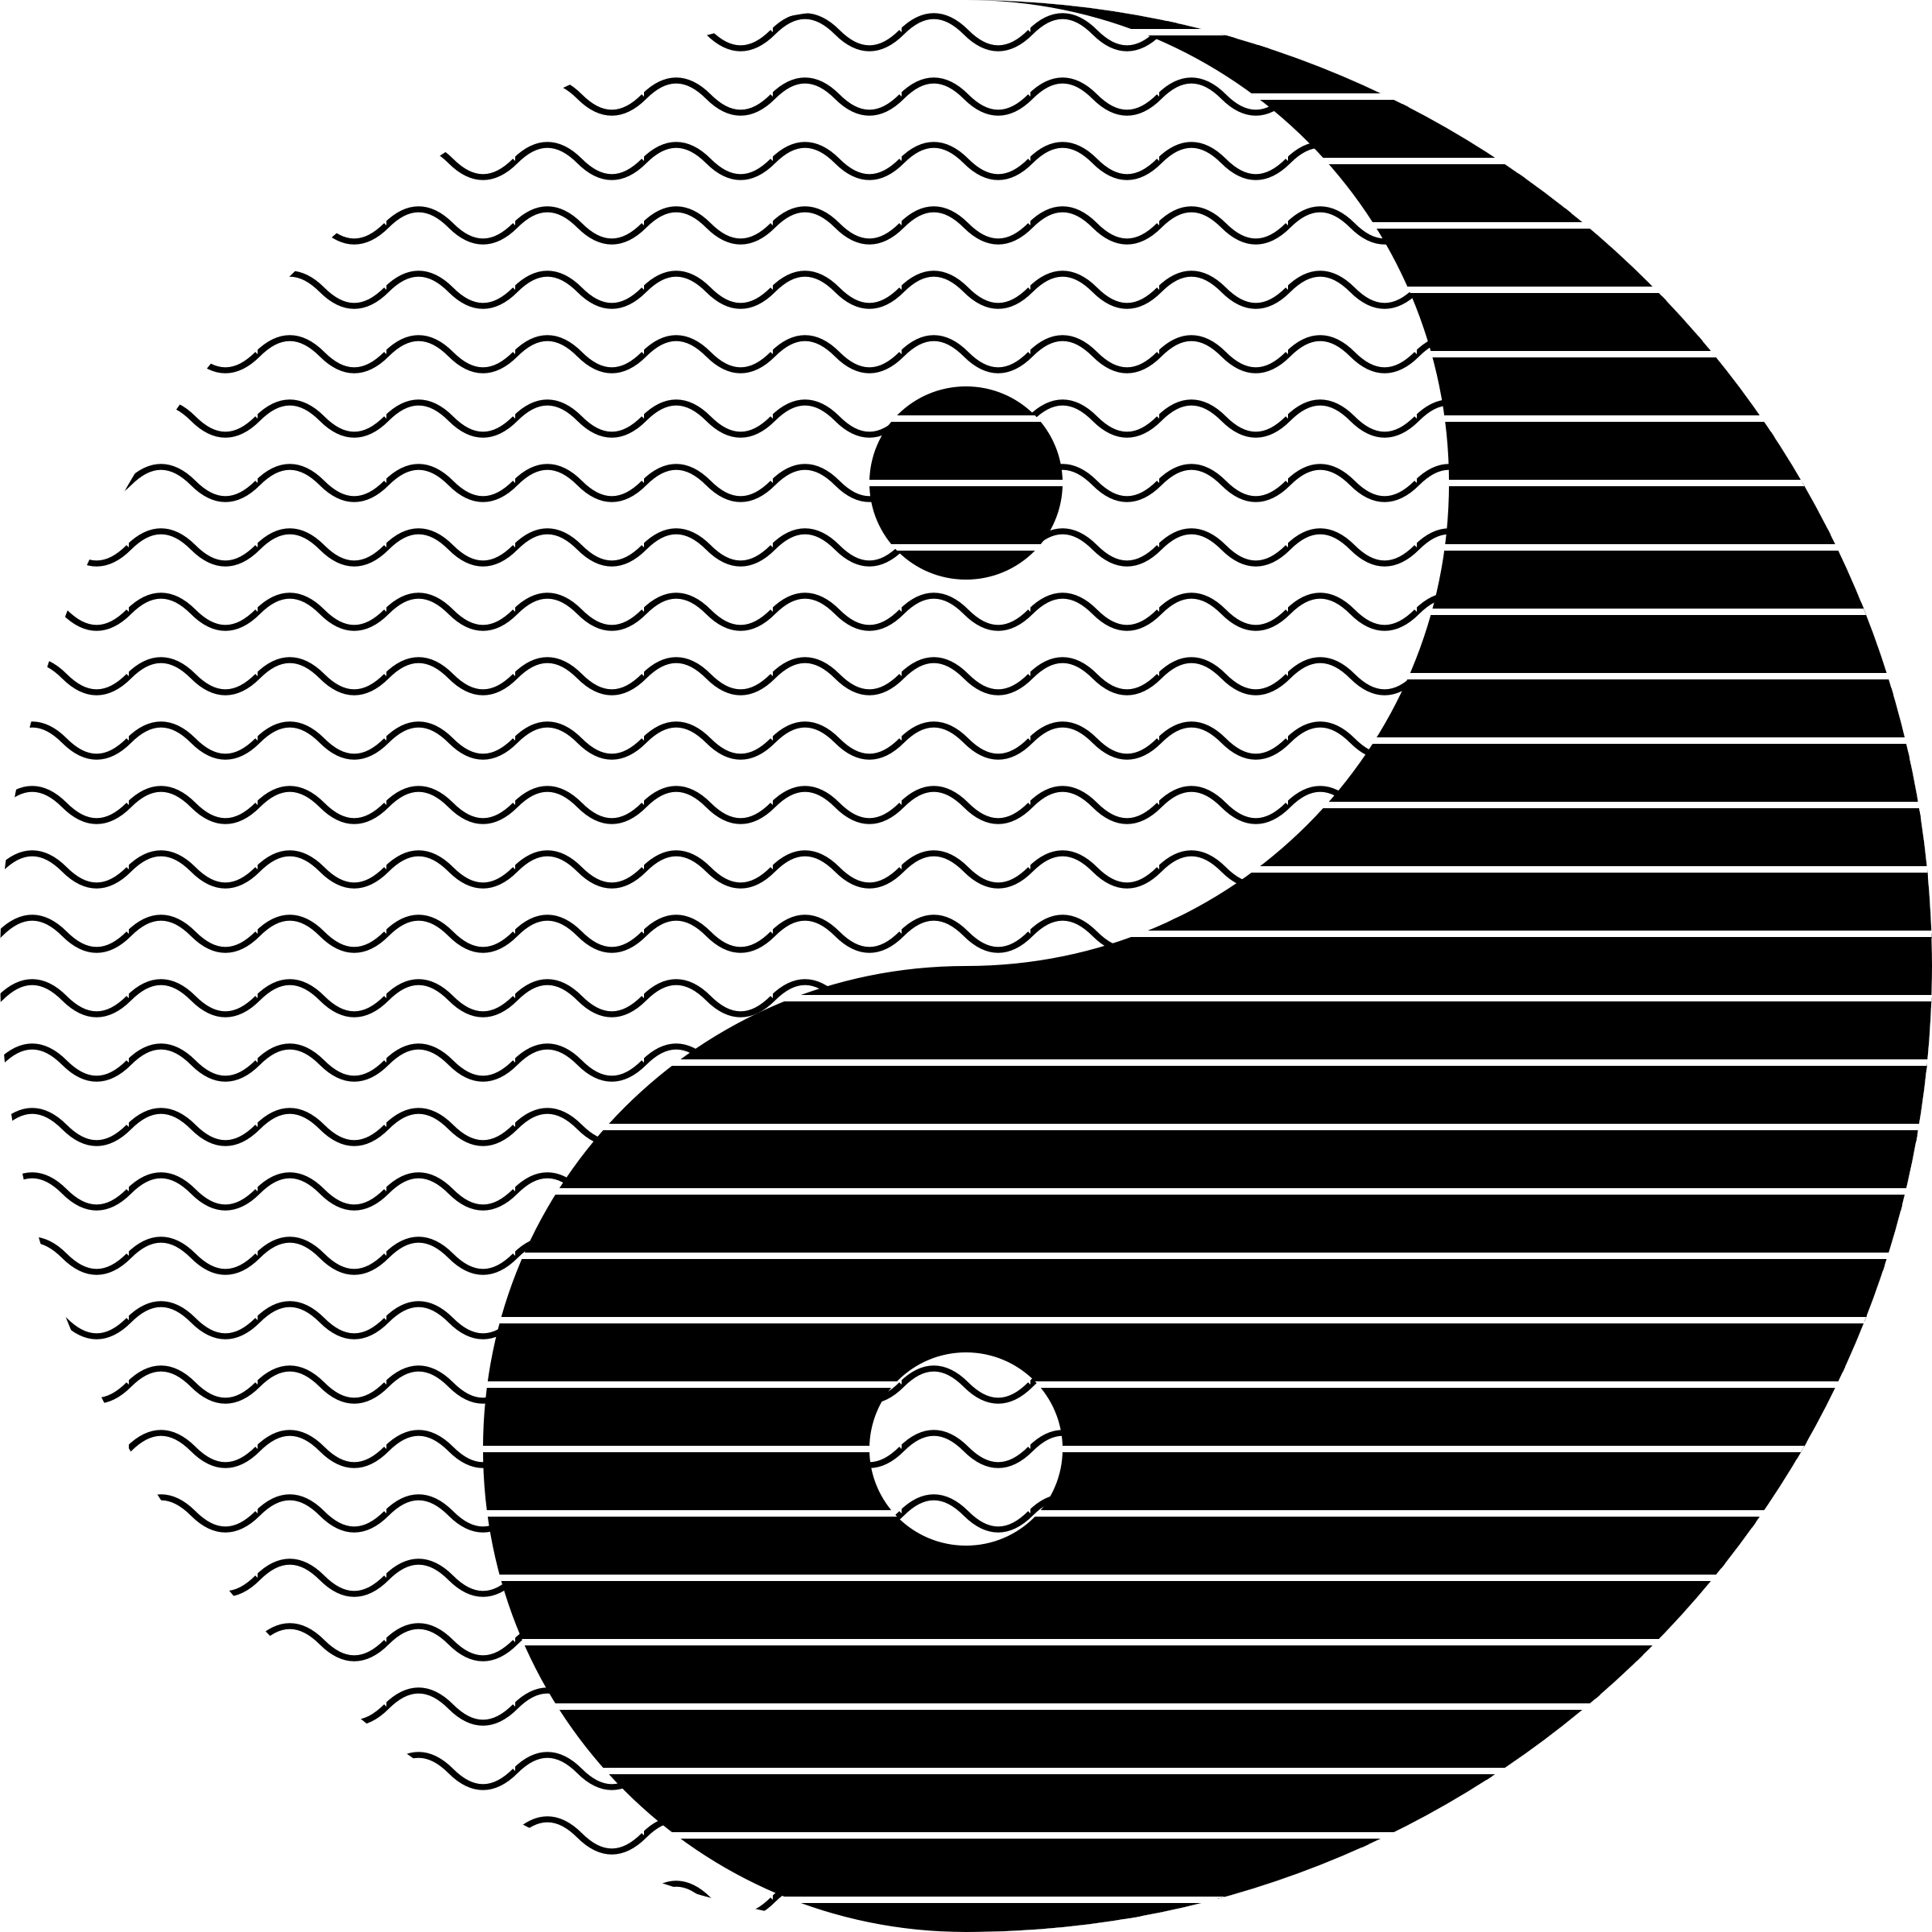 Yin Yang Waves by JayNick